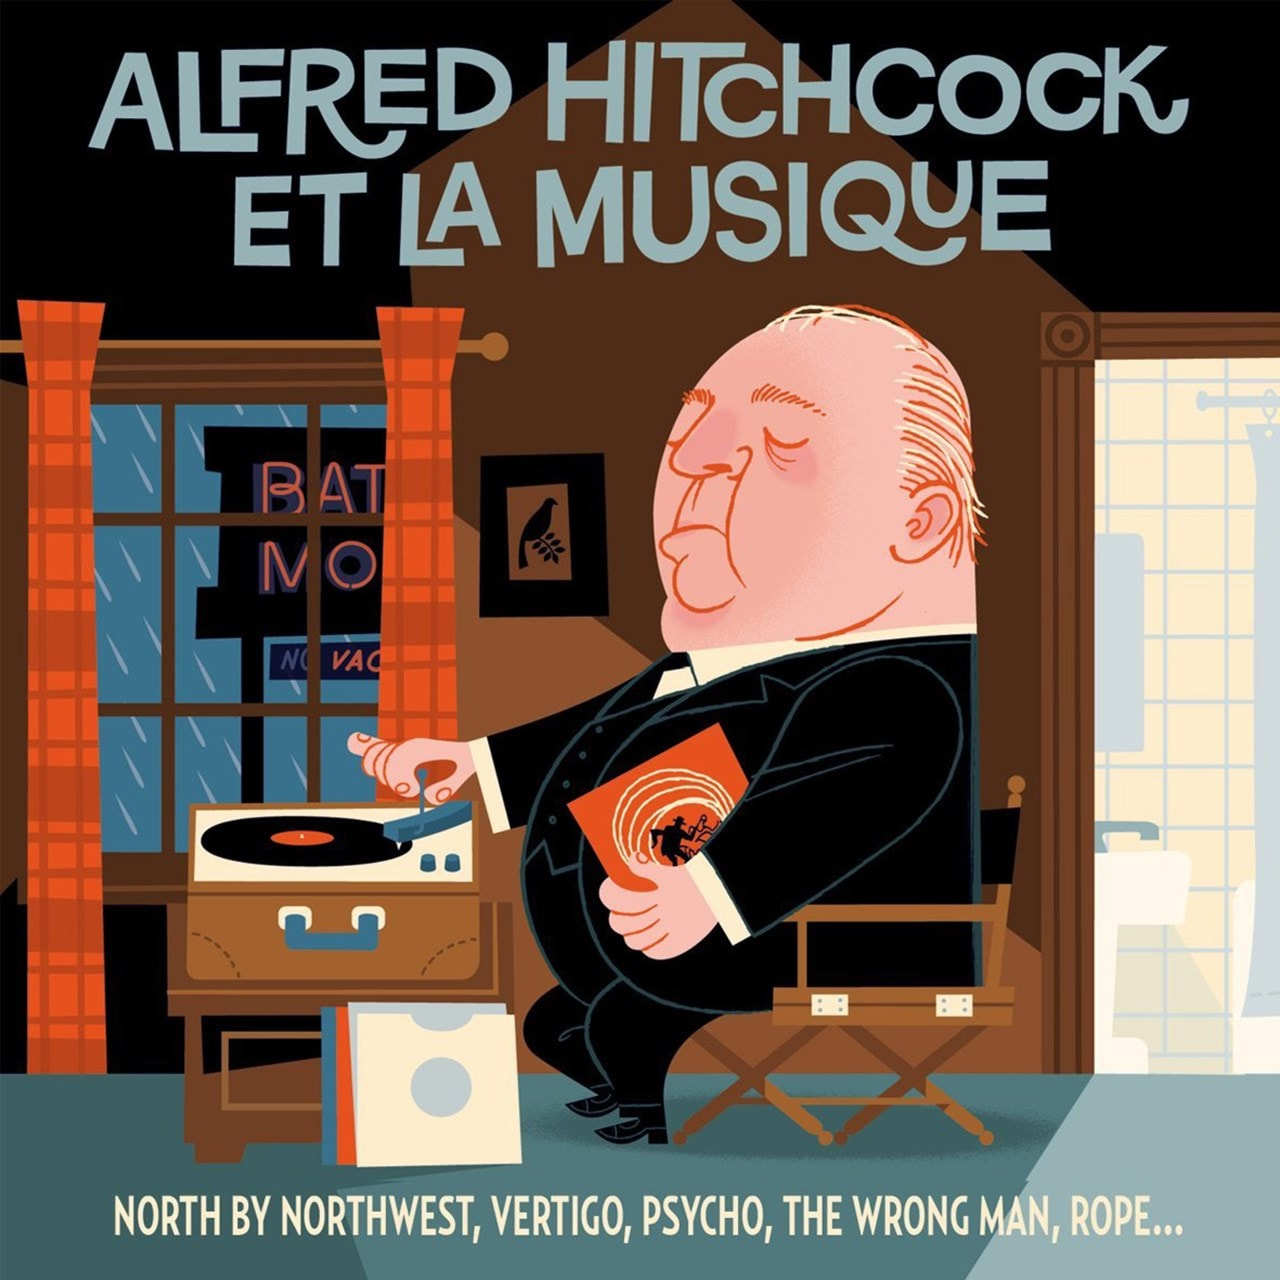 Alfred Hitchcock, Et La Musique: North By Northwest/Vertigo/Psycho/The Wrong Man/Rope... - 1